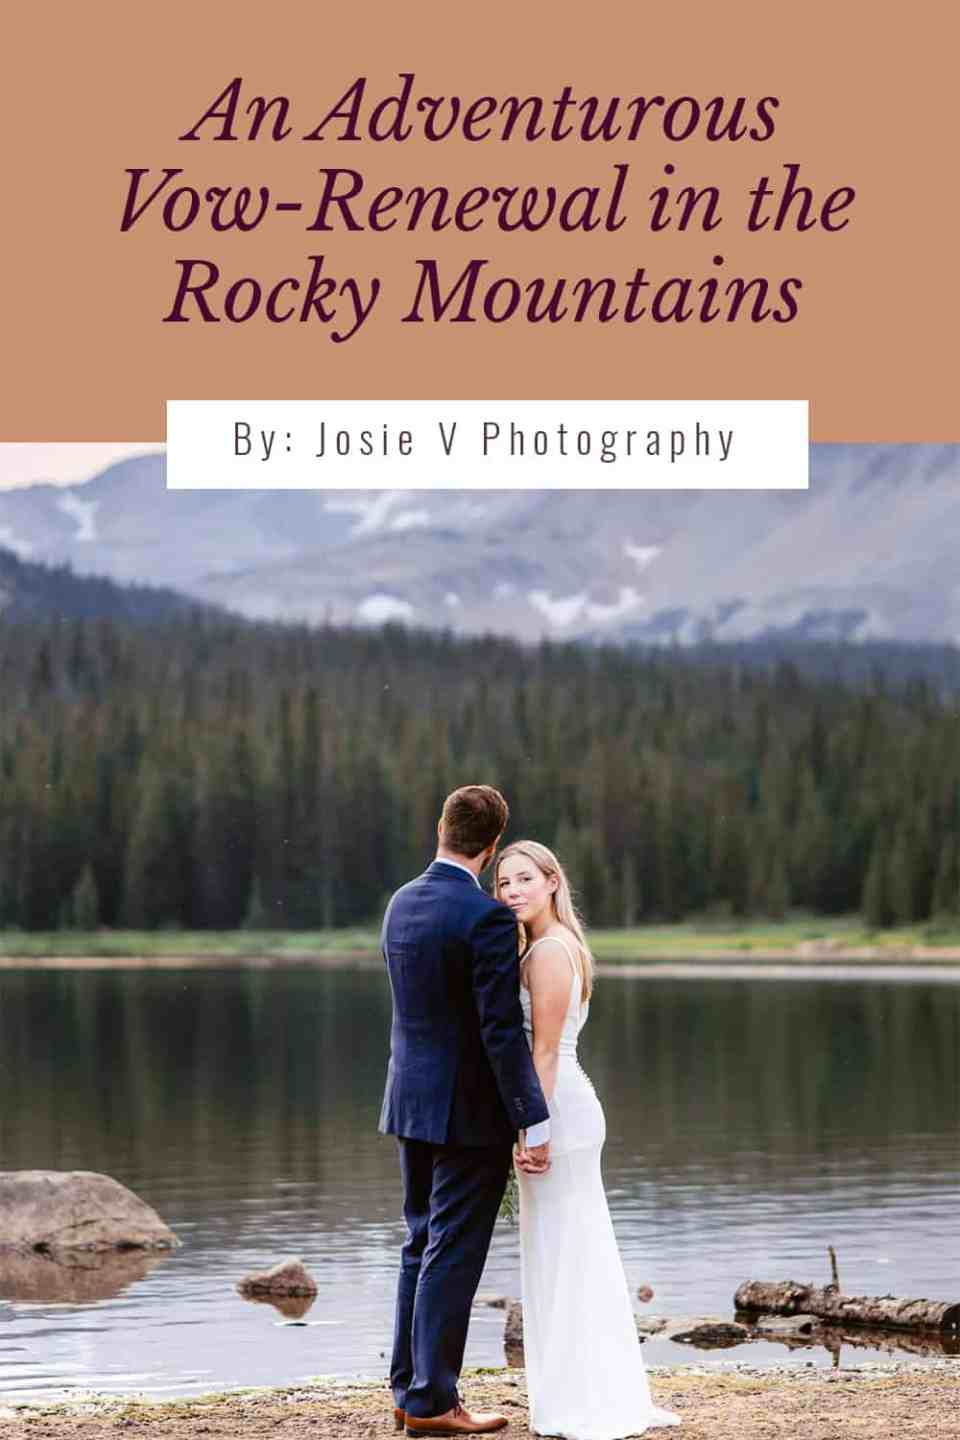 An Adventurous elopement style vow renewal in the Rocky Mountains | Josie V Photography